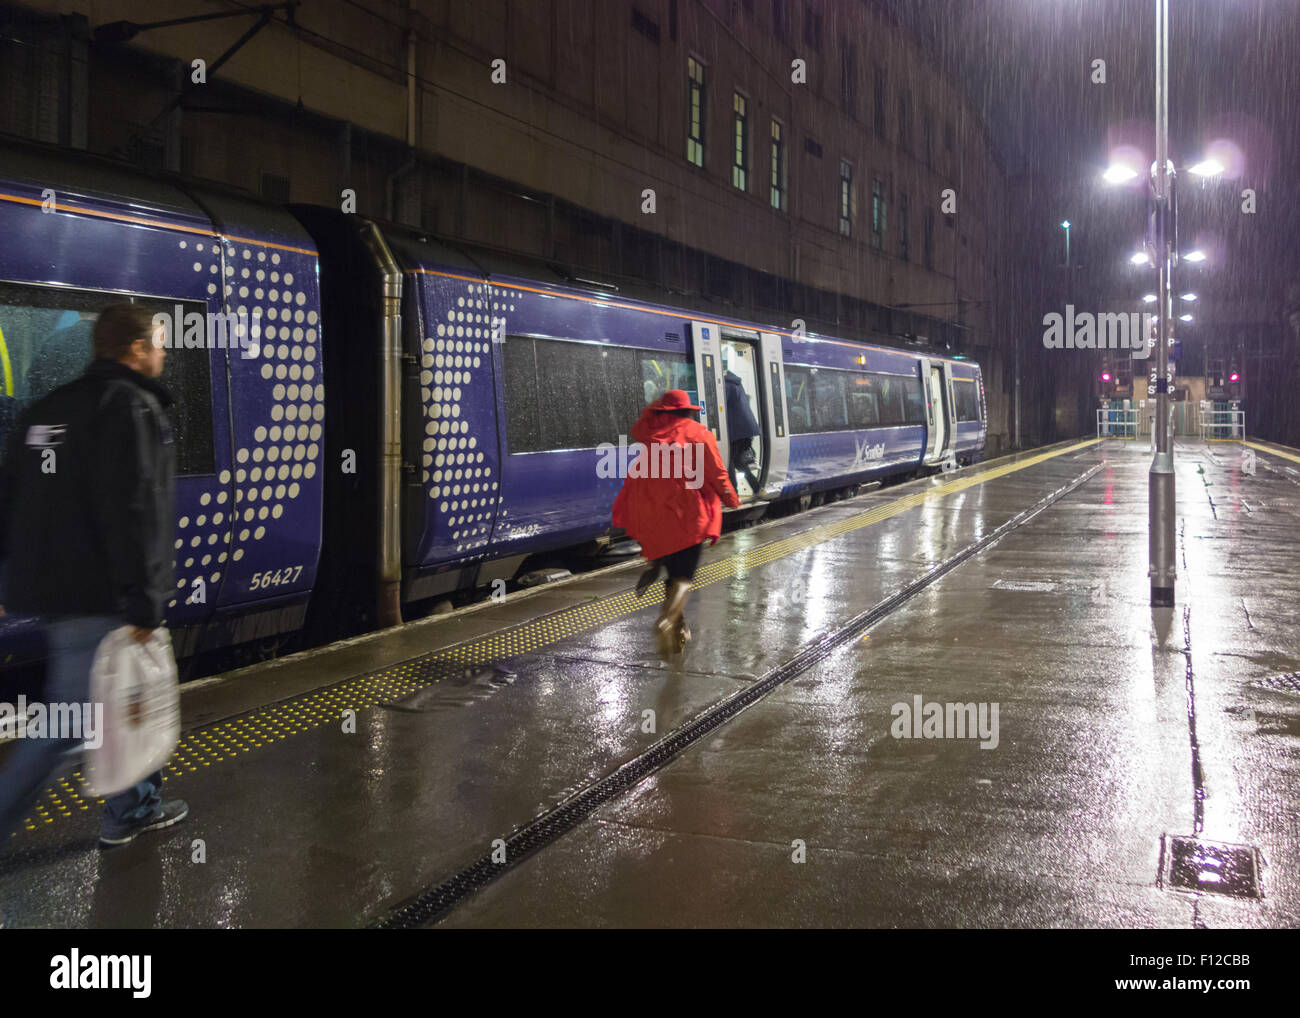 woman in red coat and hat running to catch train in the rain at night - Stock Image